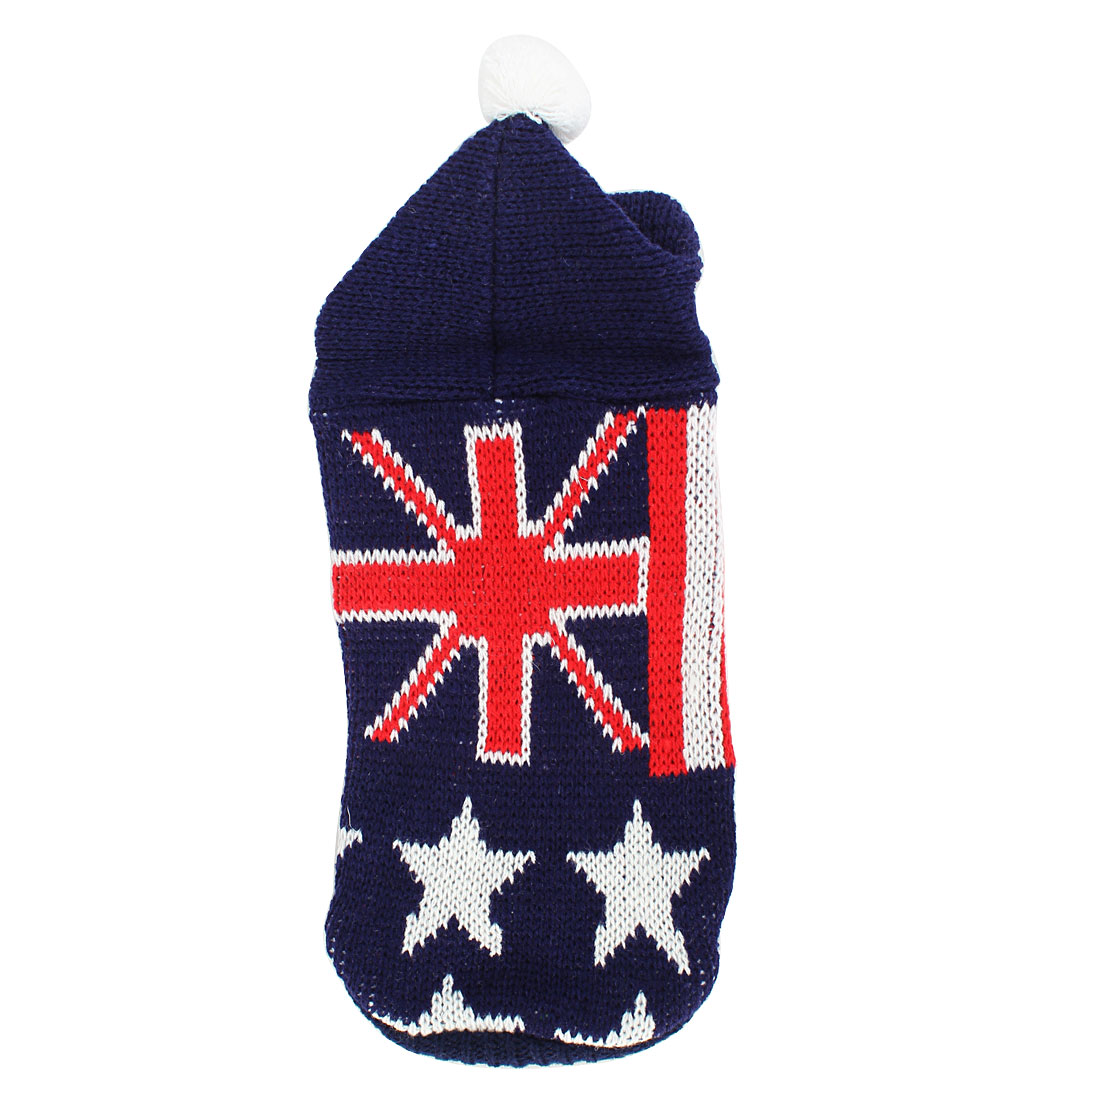 Pet Puppy Maltese Ribbed Cuff Knitwear Hoodie Flag Pattern Apparel Sweater Dark Blue Red White Size M